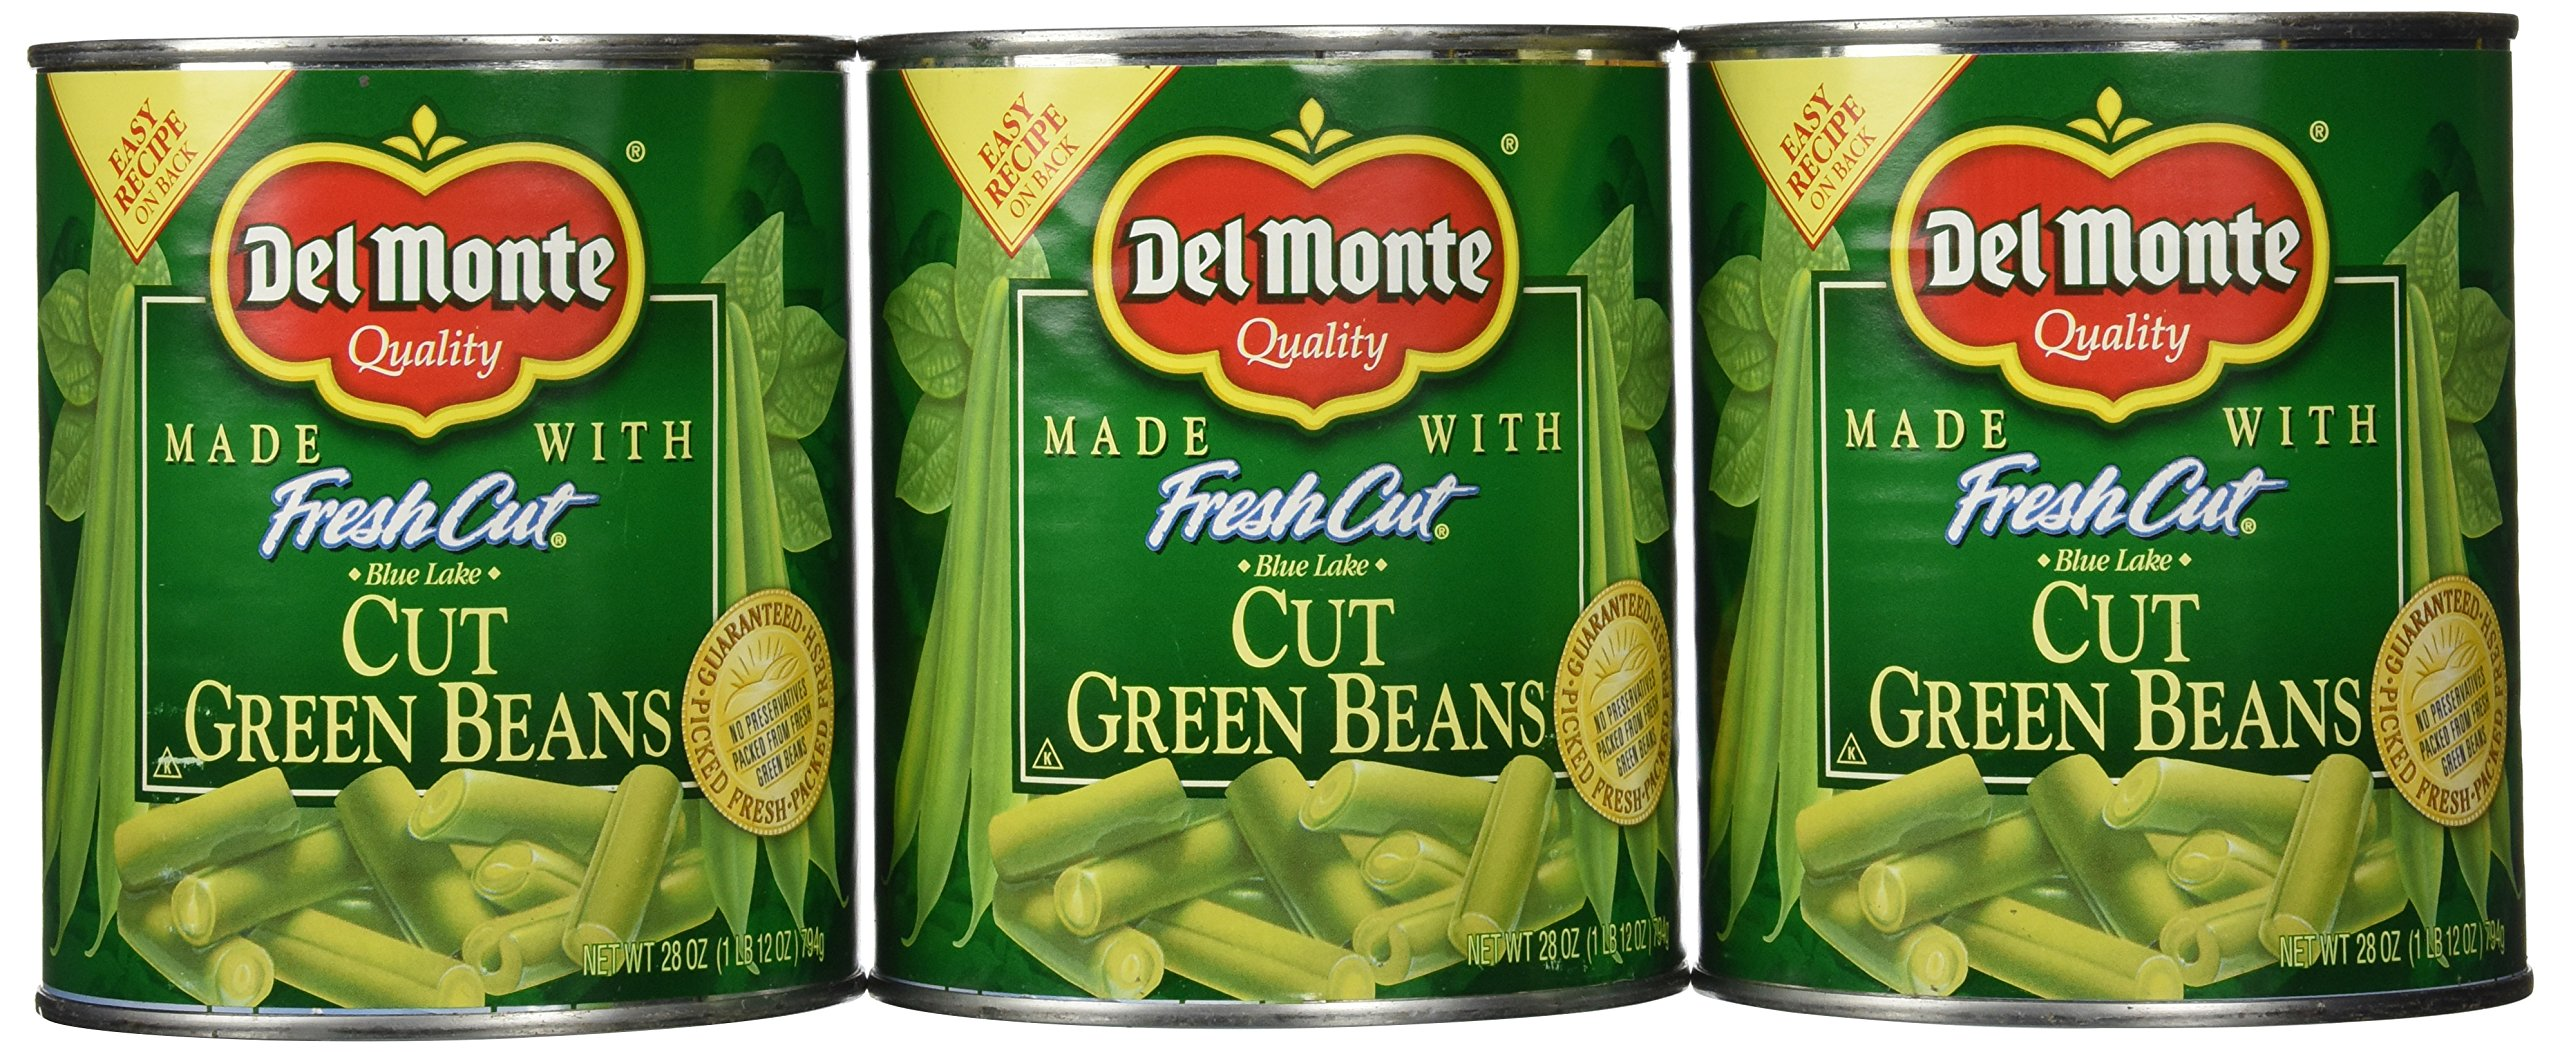 Del Monte Cut Green Beans, 28 Ounce (Pack of 6)